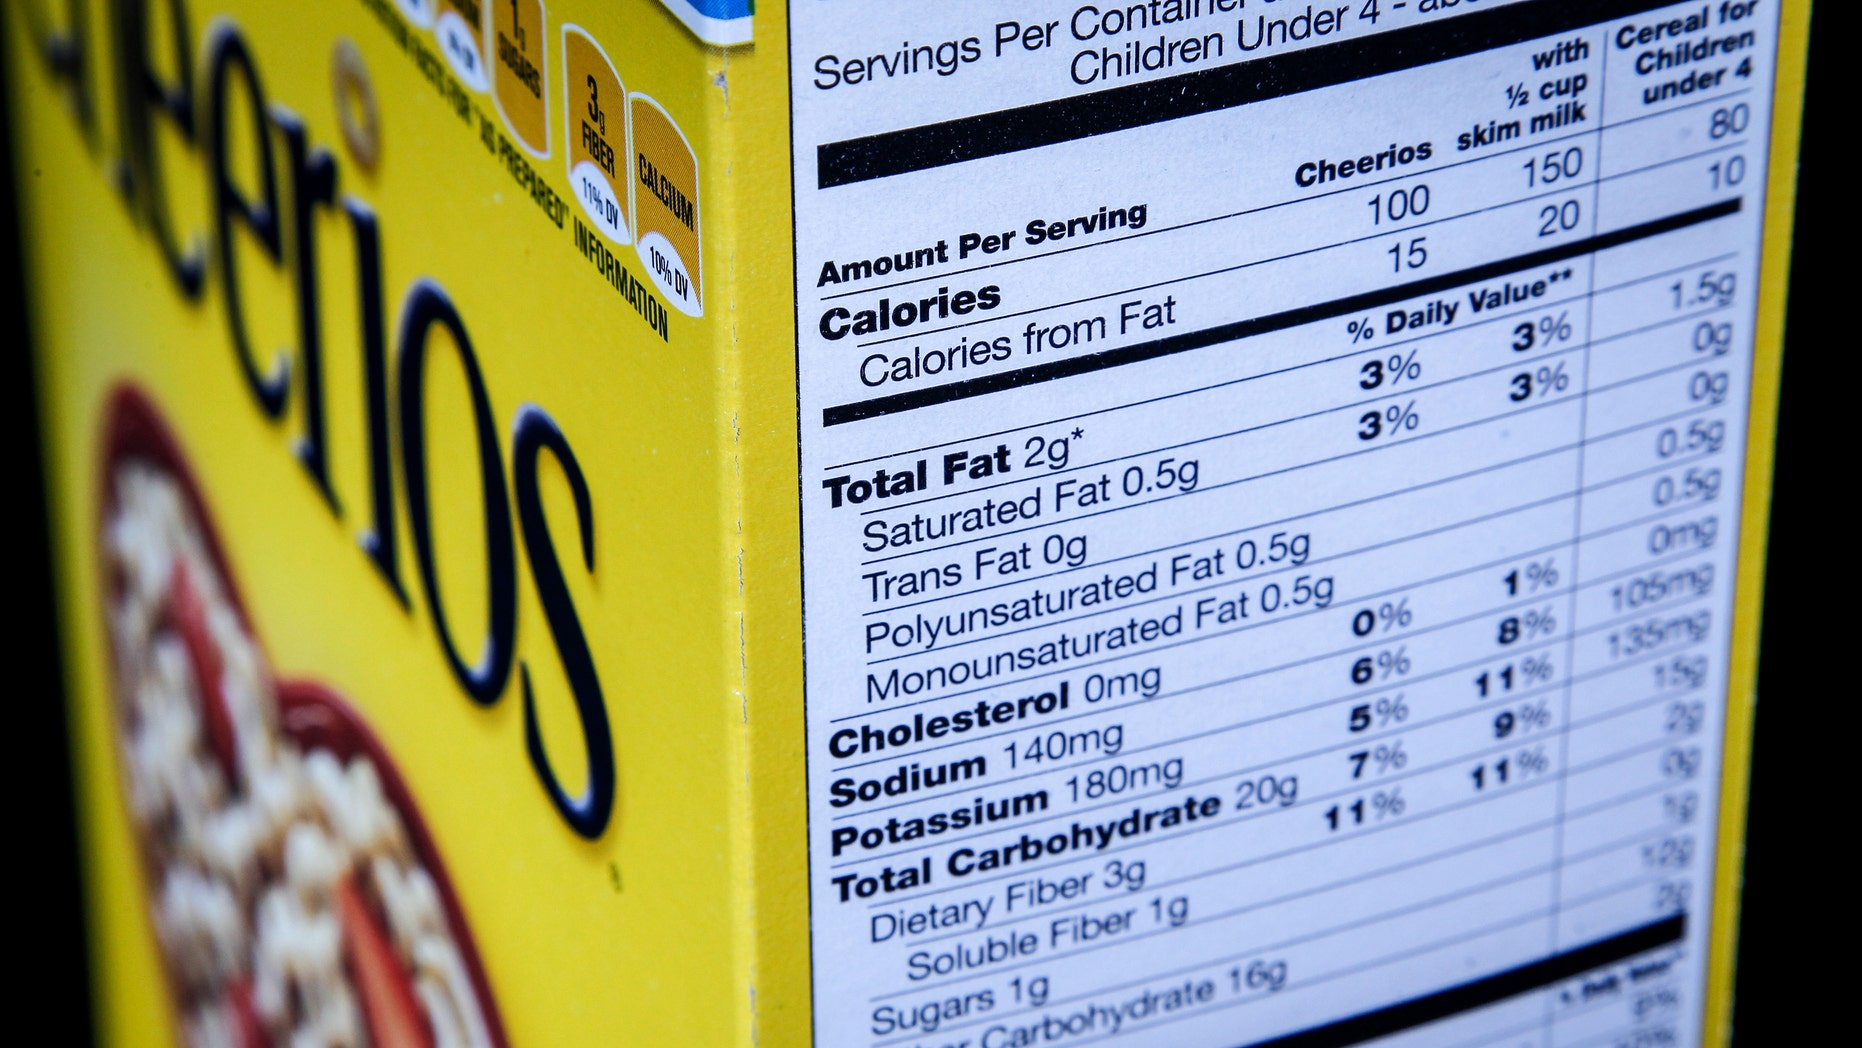 FILE - In this Jan. 23, 2014 file photo, the nutrition facts label on the side of a cereal box is photographed in Washington. Nutrition facts labels on food packages are getting a long-awaited makeover, with calories listed in bigger, bolder type and a new line for added sugars. (AP Photo/J. David Ake, File)